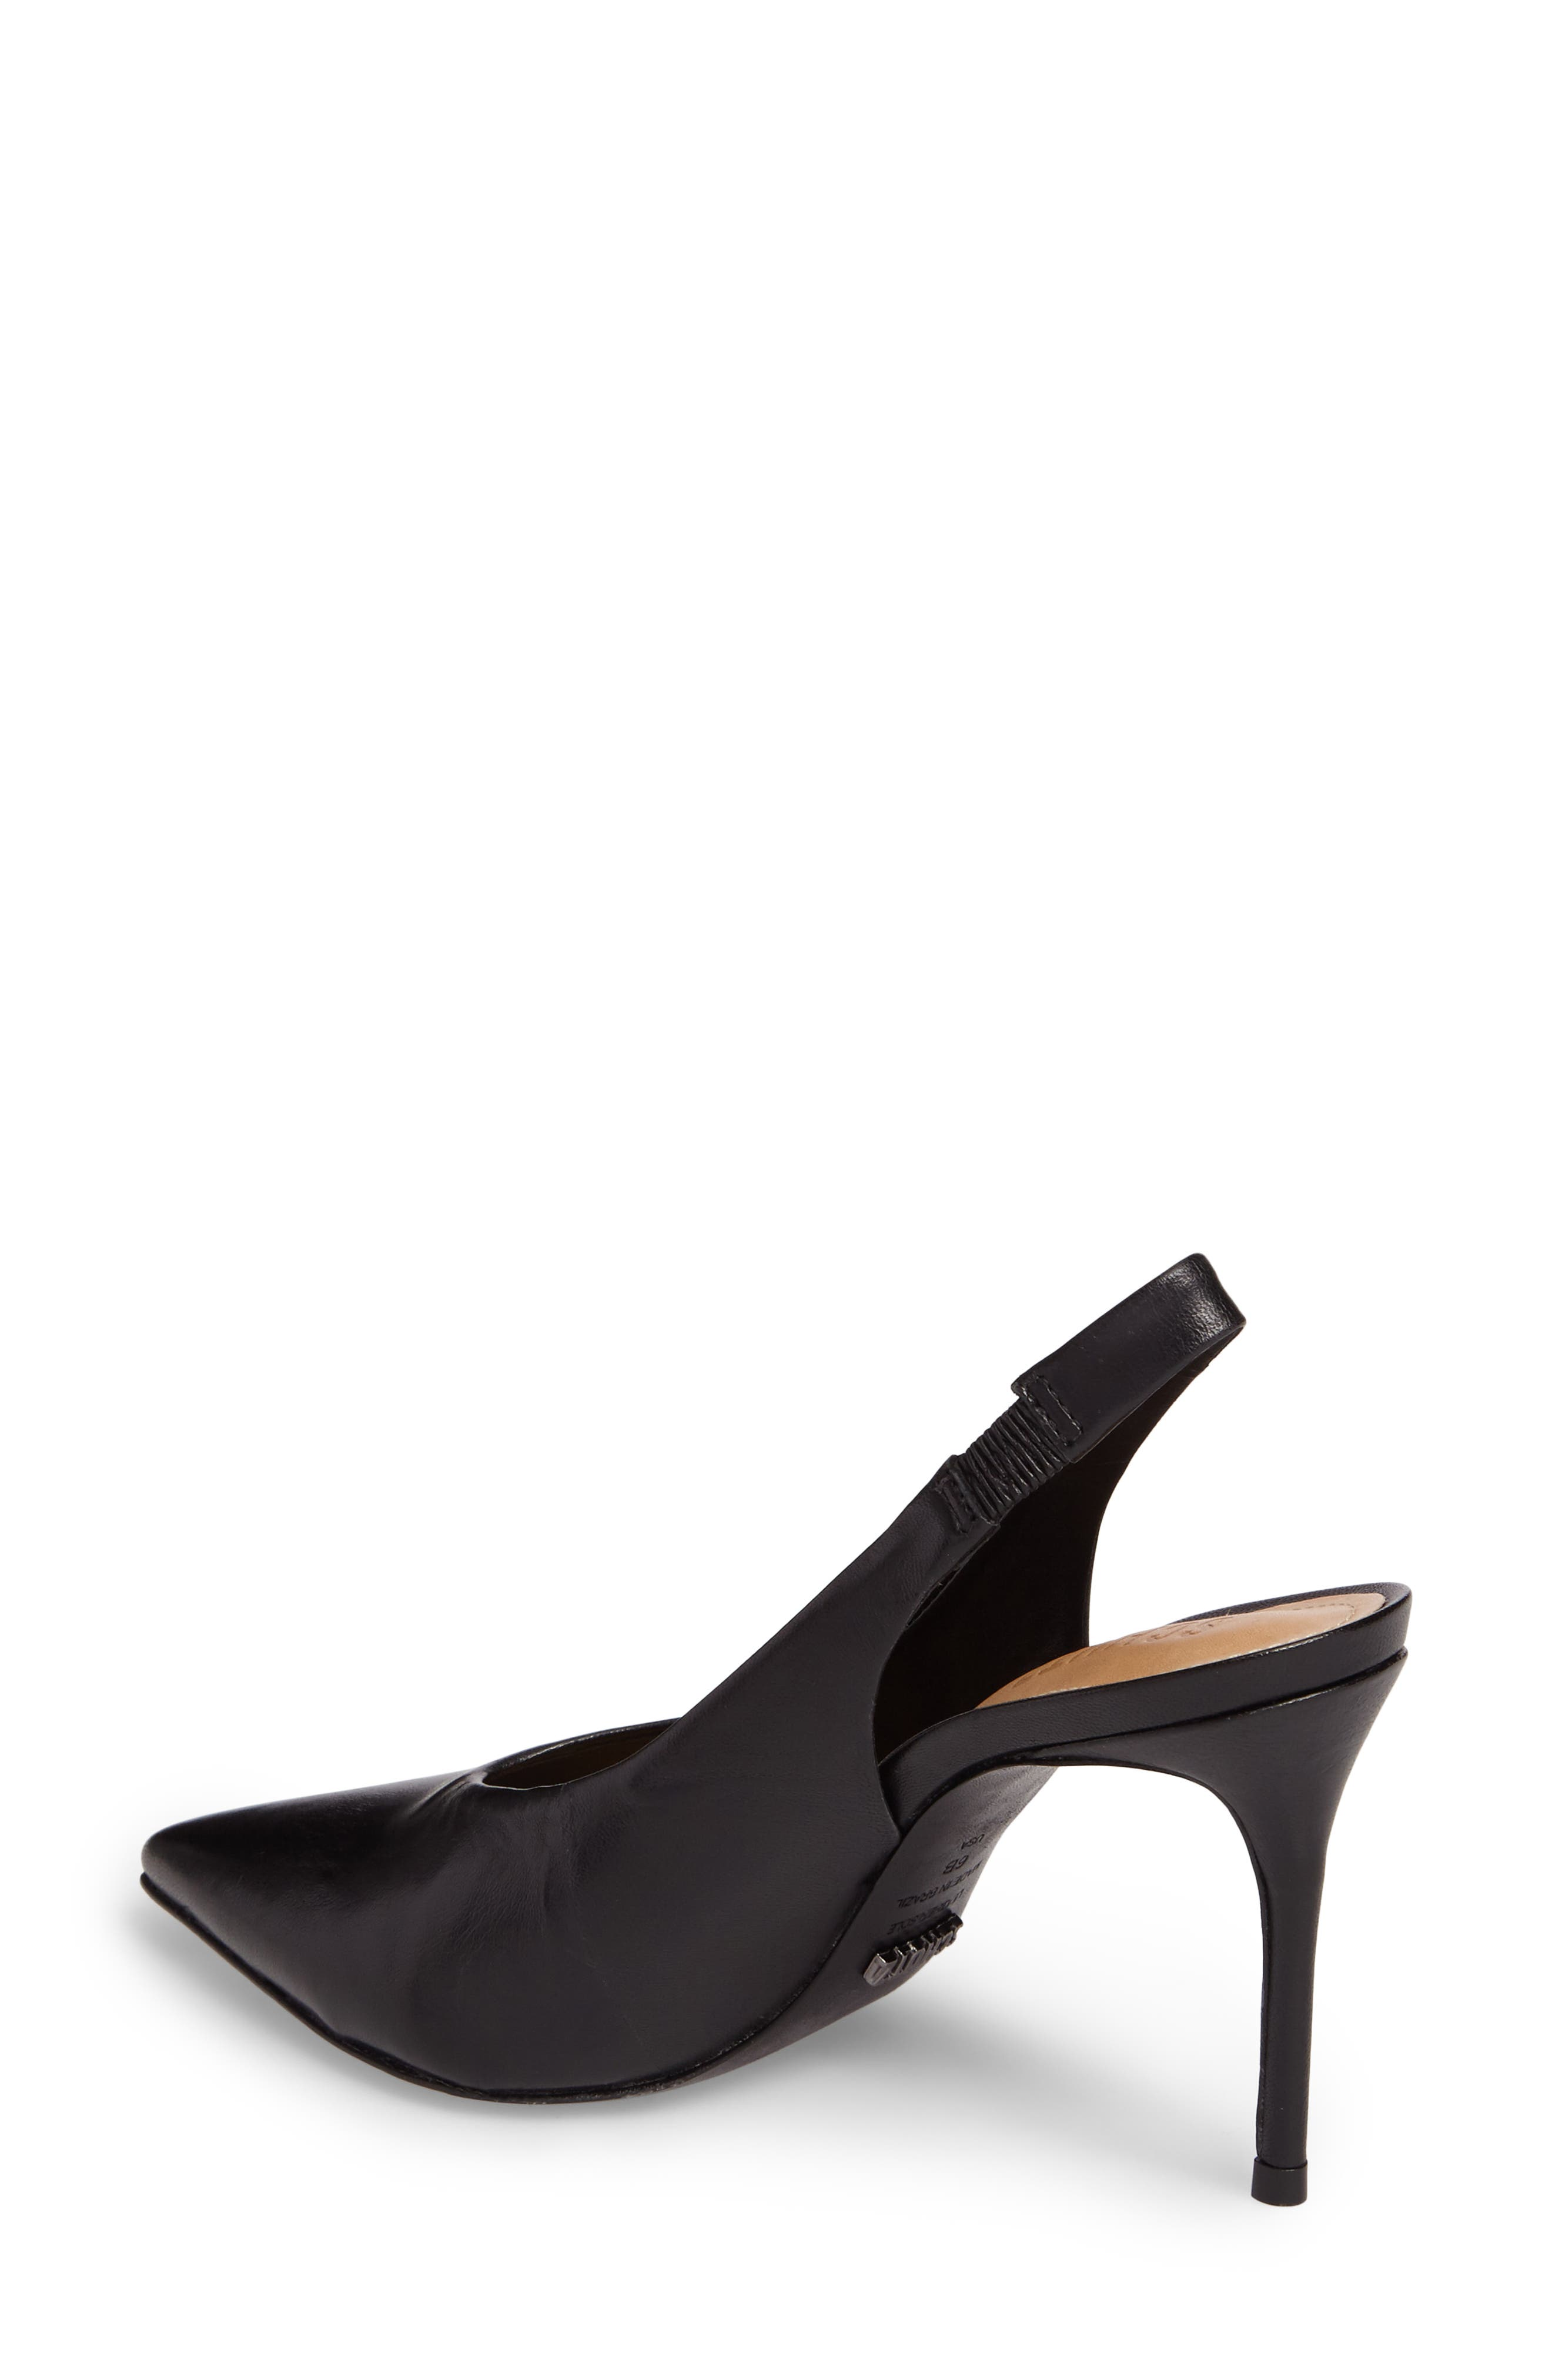 Phisalis Slingback Pump,                             Alternate thumbnail 2, color,                             001